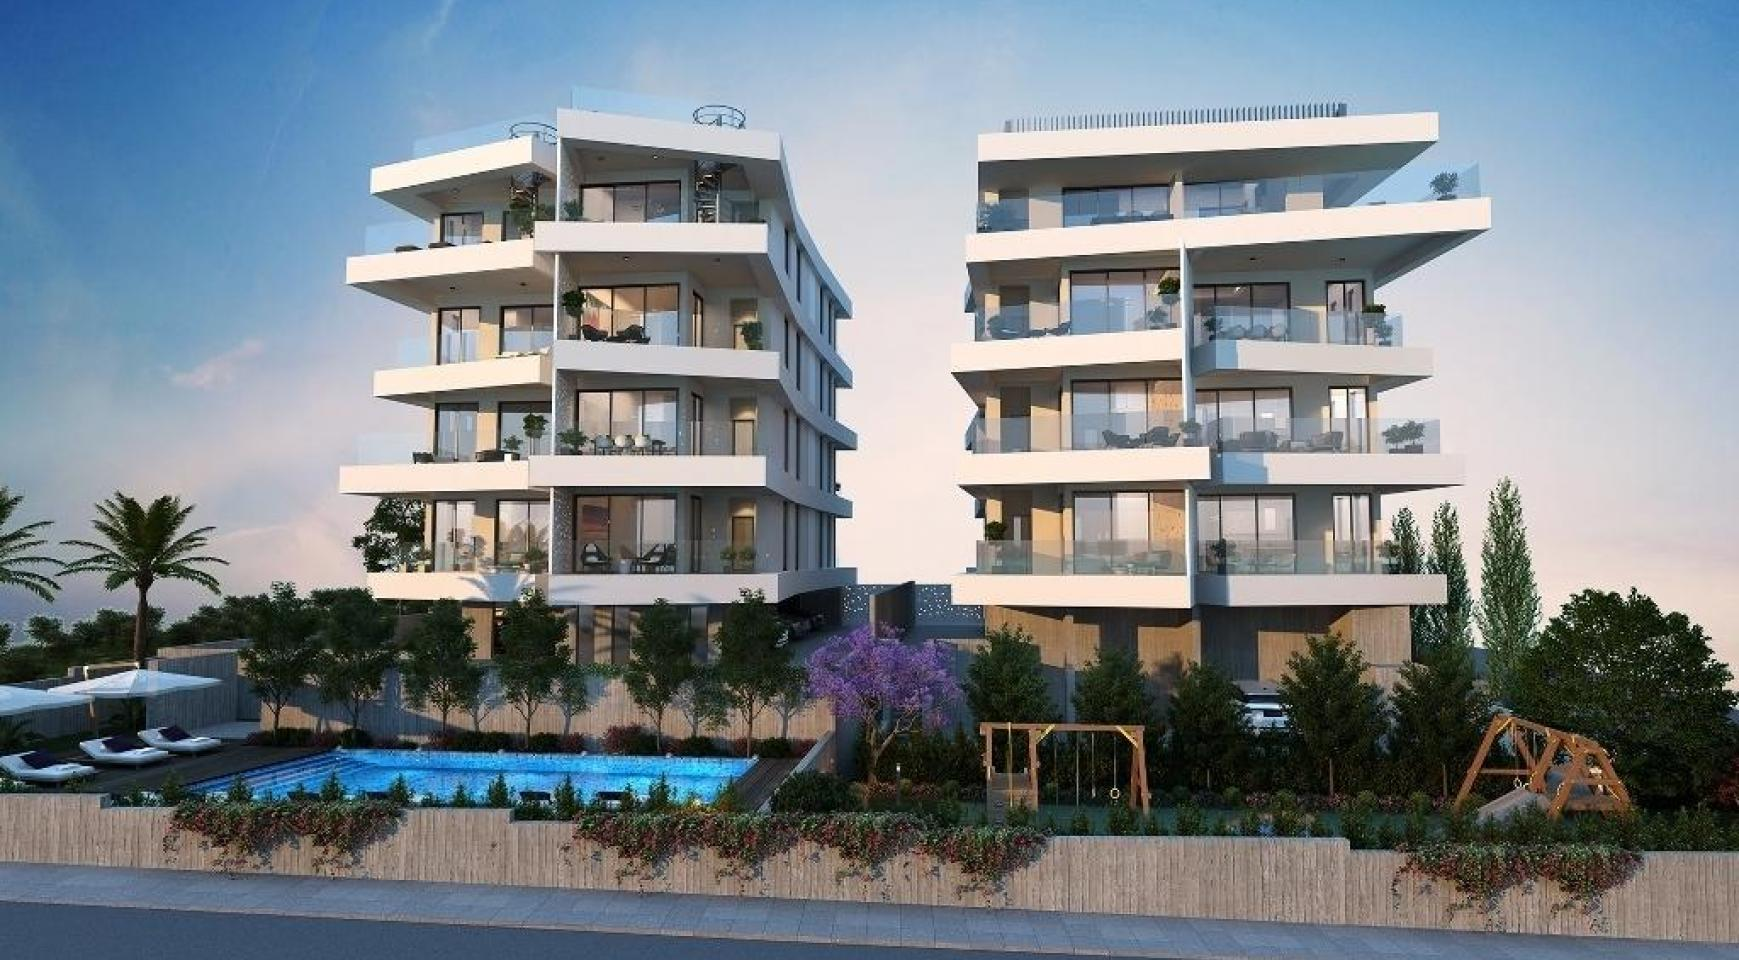 New 3 Bedroom Apartment in a Contemporary Building in Germasogeia - 4